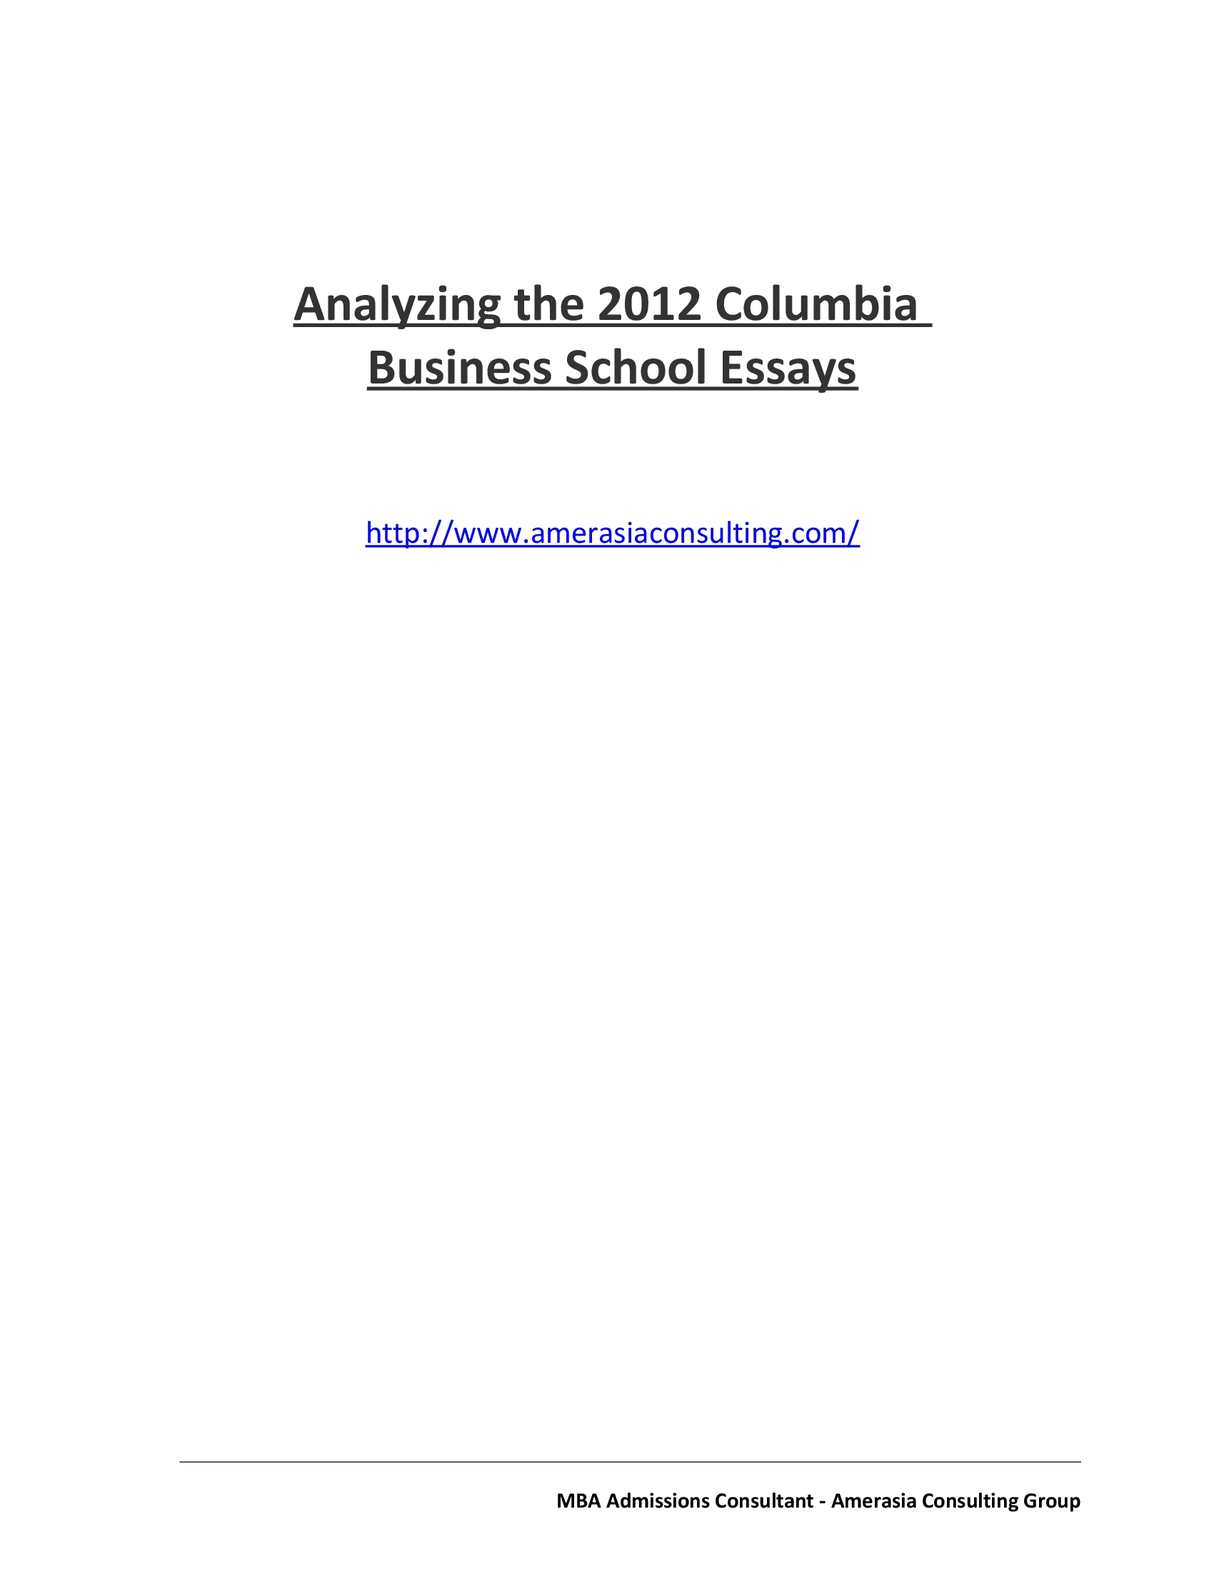 017 Essay Example Columbia Essays Analyzing The Business School Analys Admission Analysis Help Examples Shocking Application That Worked Mba Tips Full